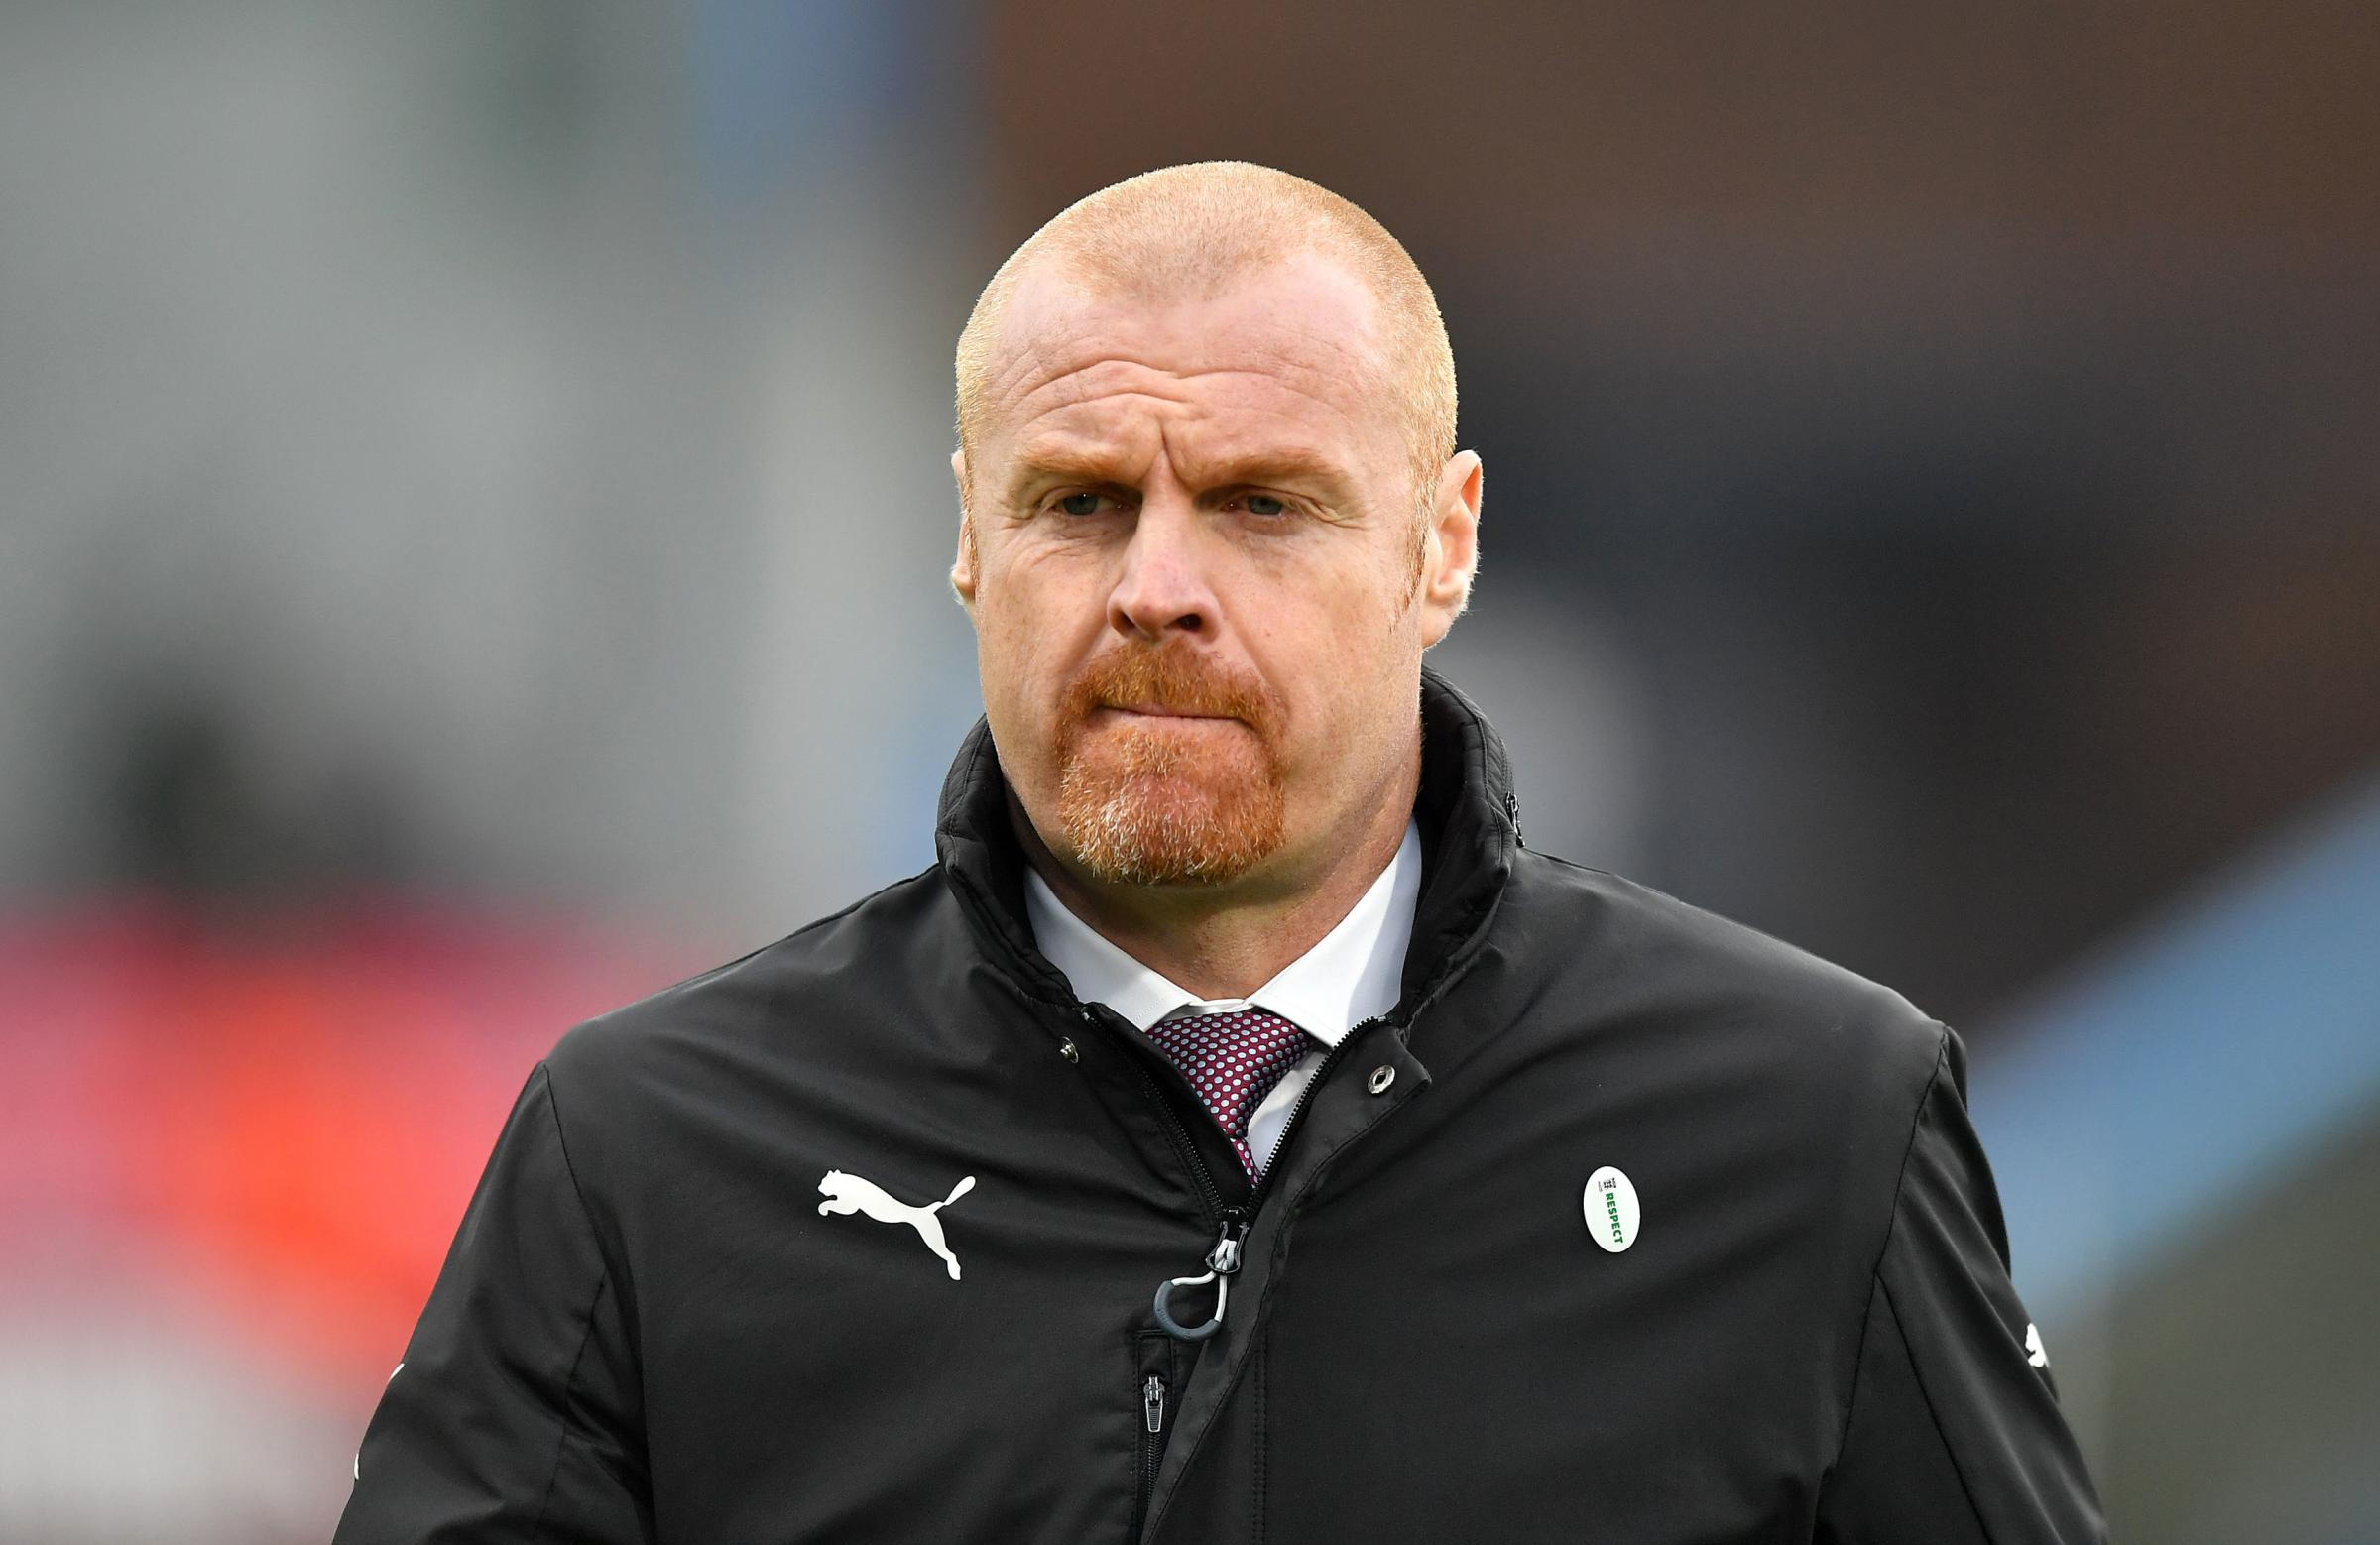 Burnley v Arsenal LIVE: Updates from final day of Premier League season